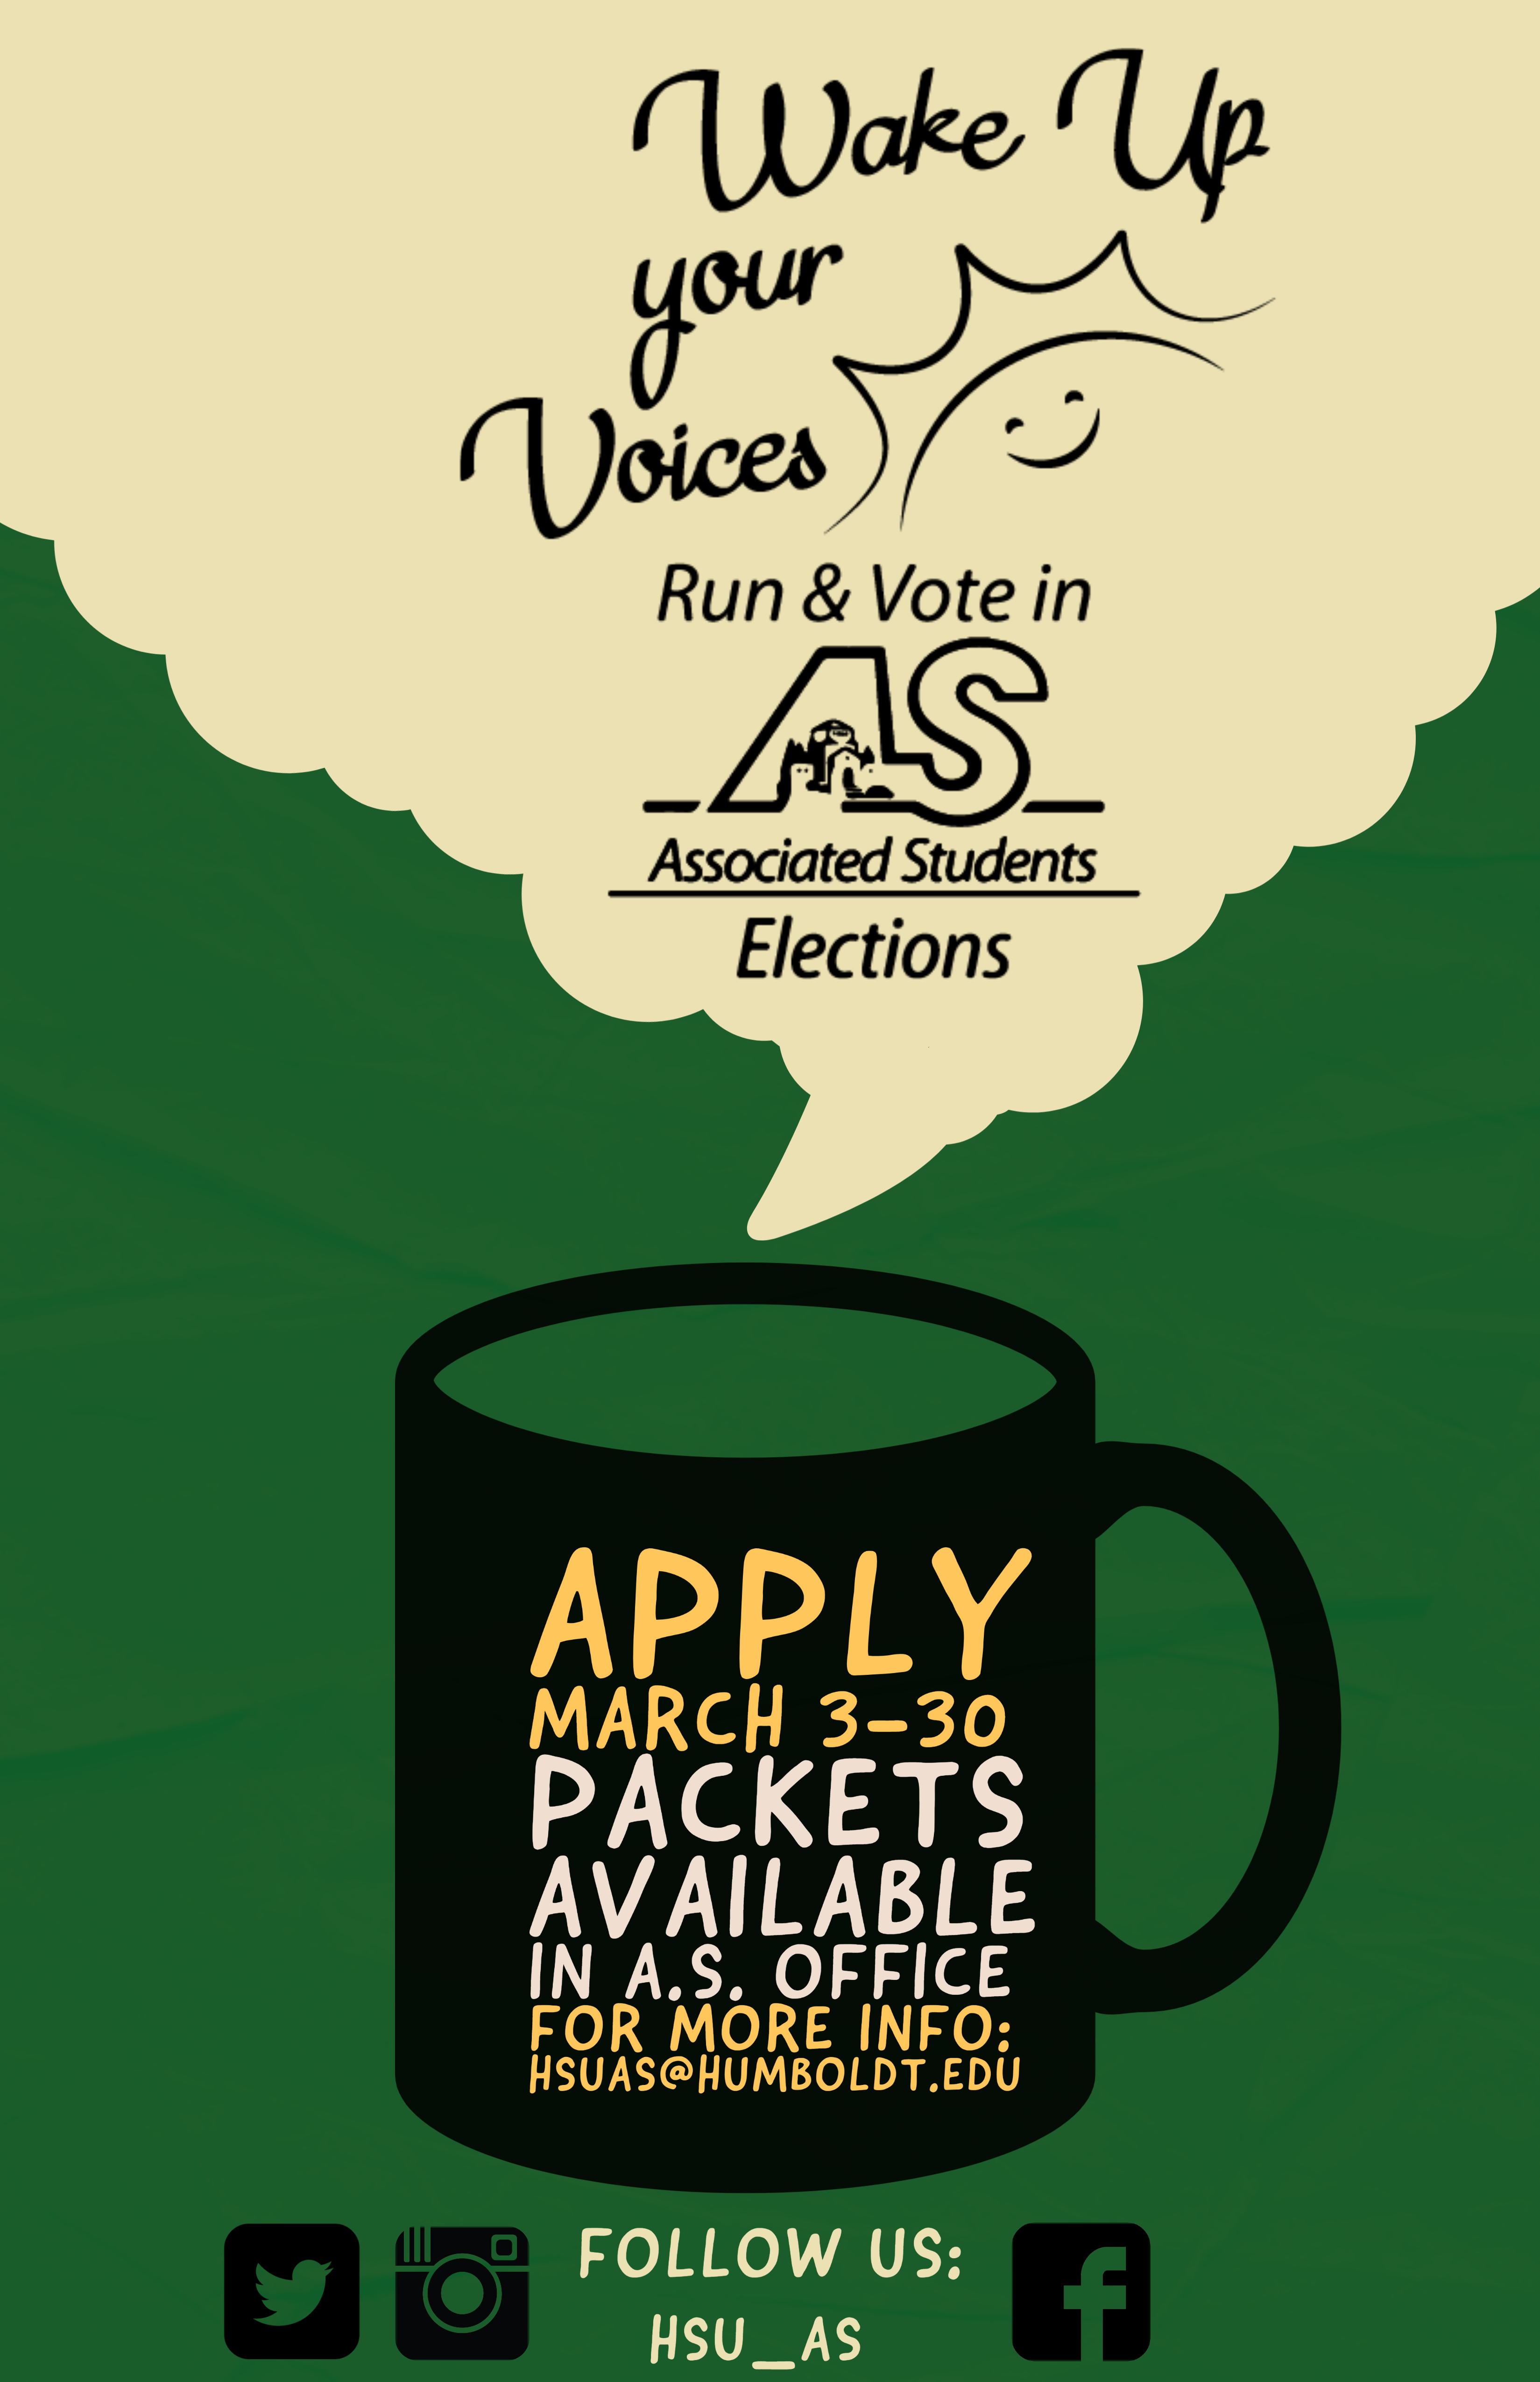 Wake Up Your Voices- Run & Vote in AS Elections! Apply March 3-30, Packets available in the A.S. Office